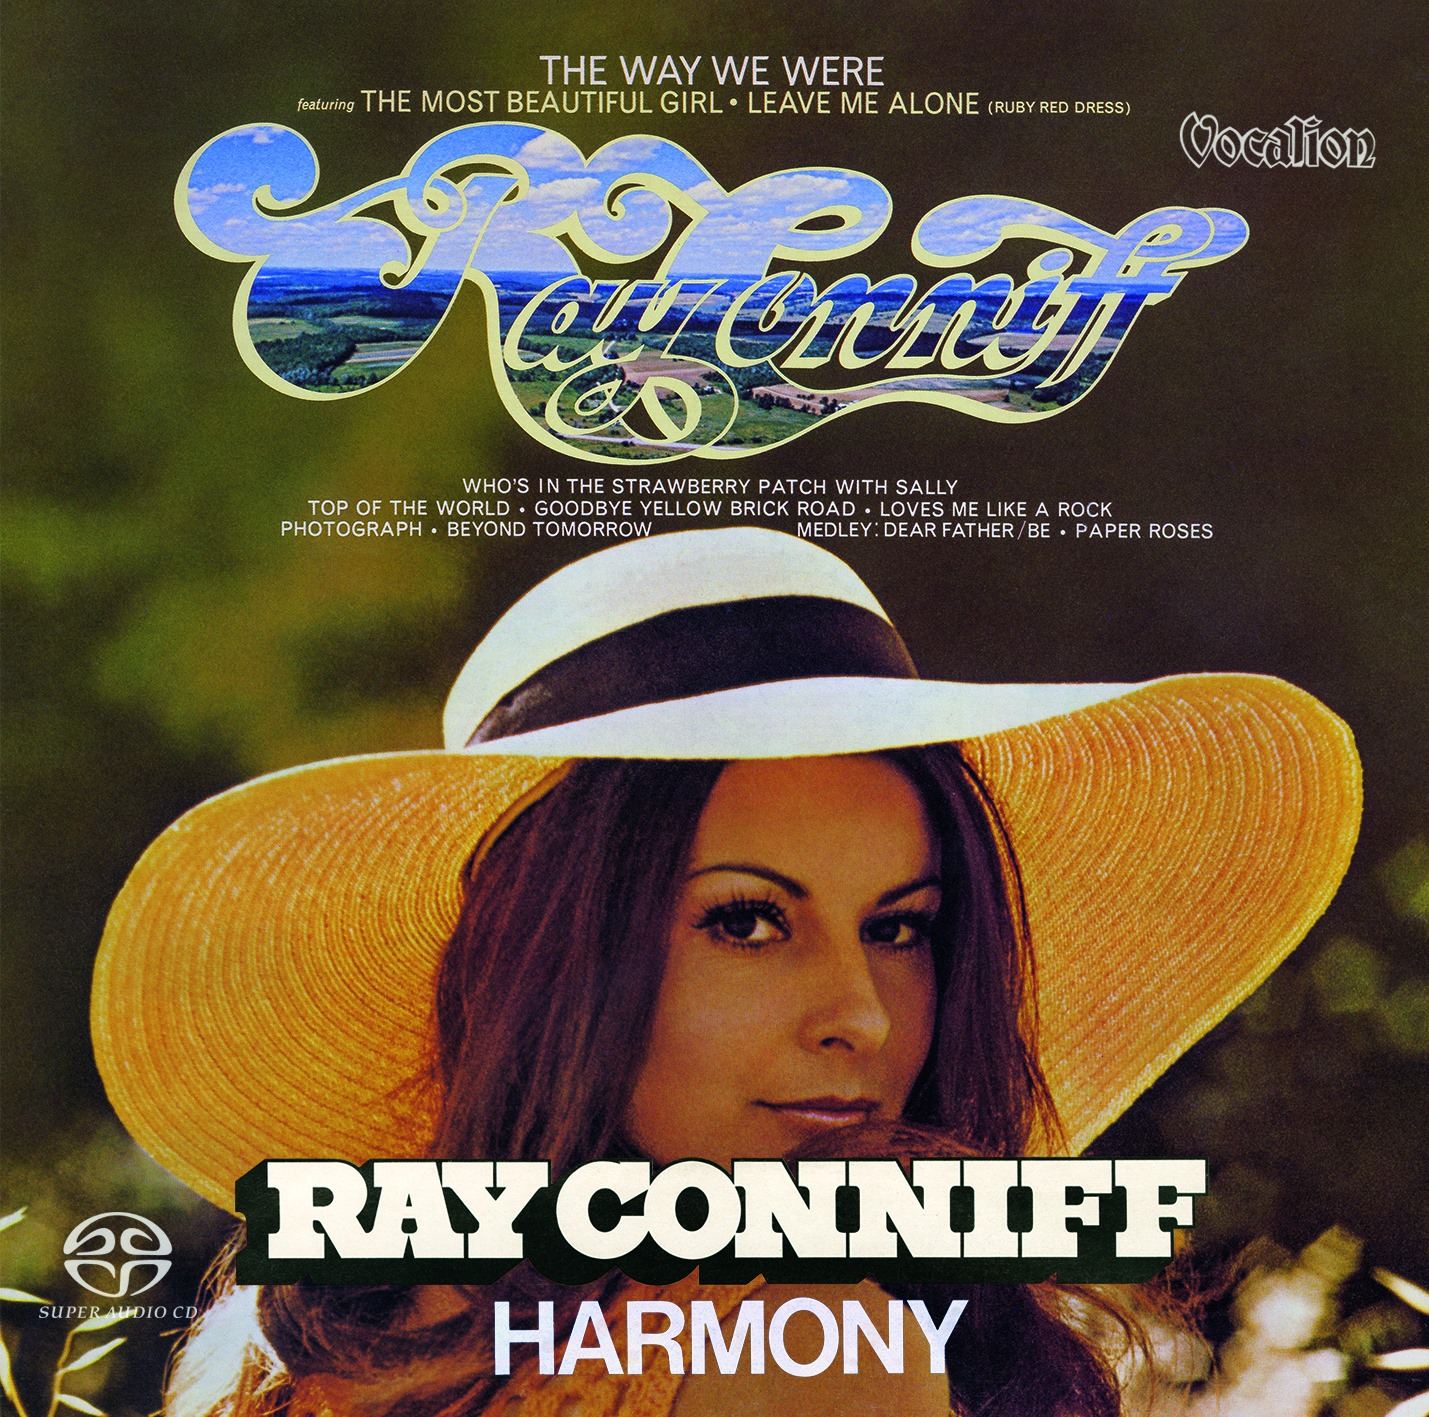 new Ray Conniff SACD: Harmony & The Way We Were